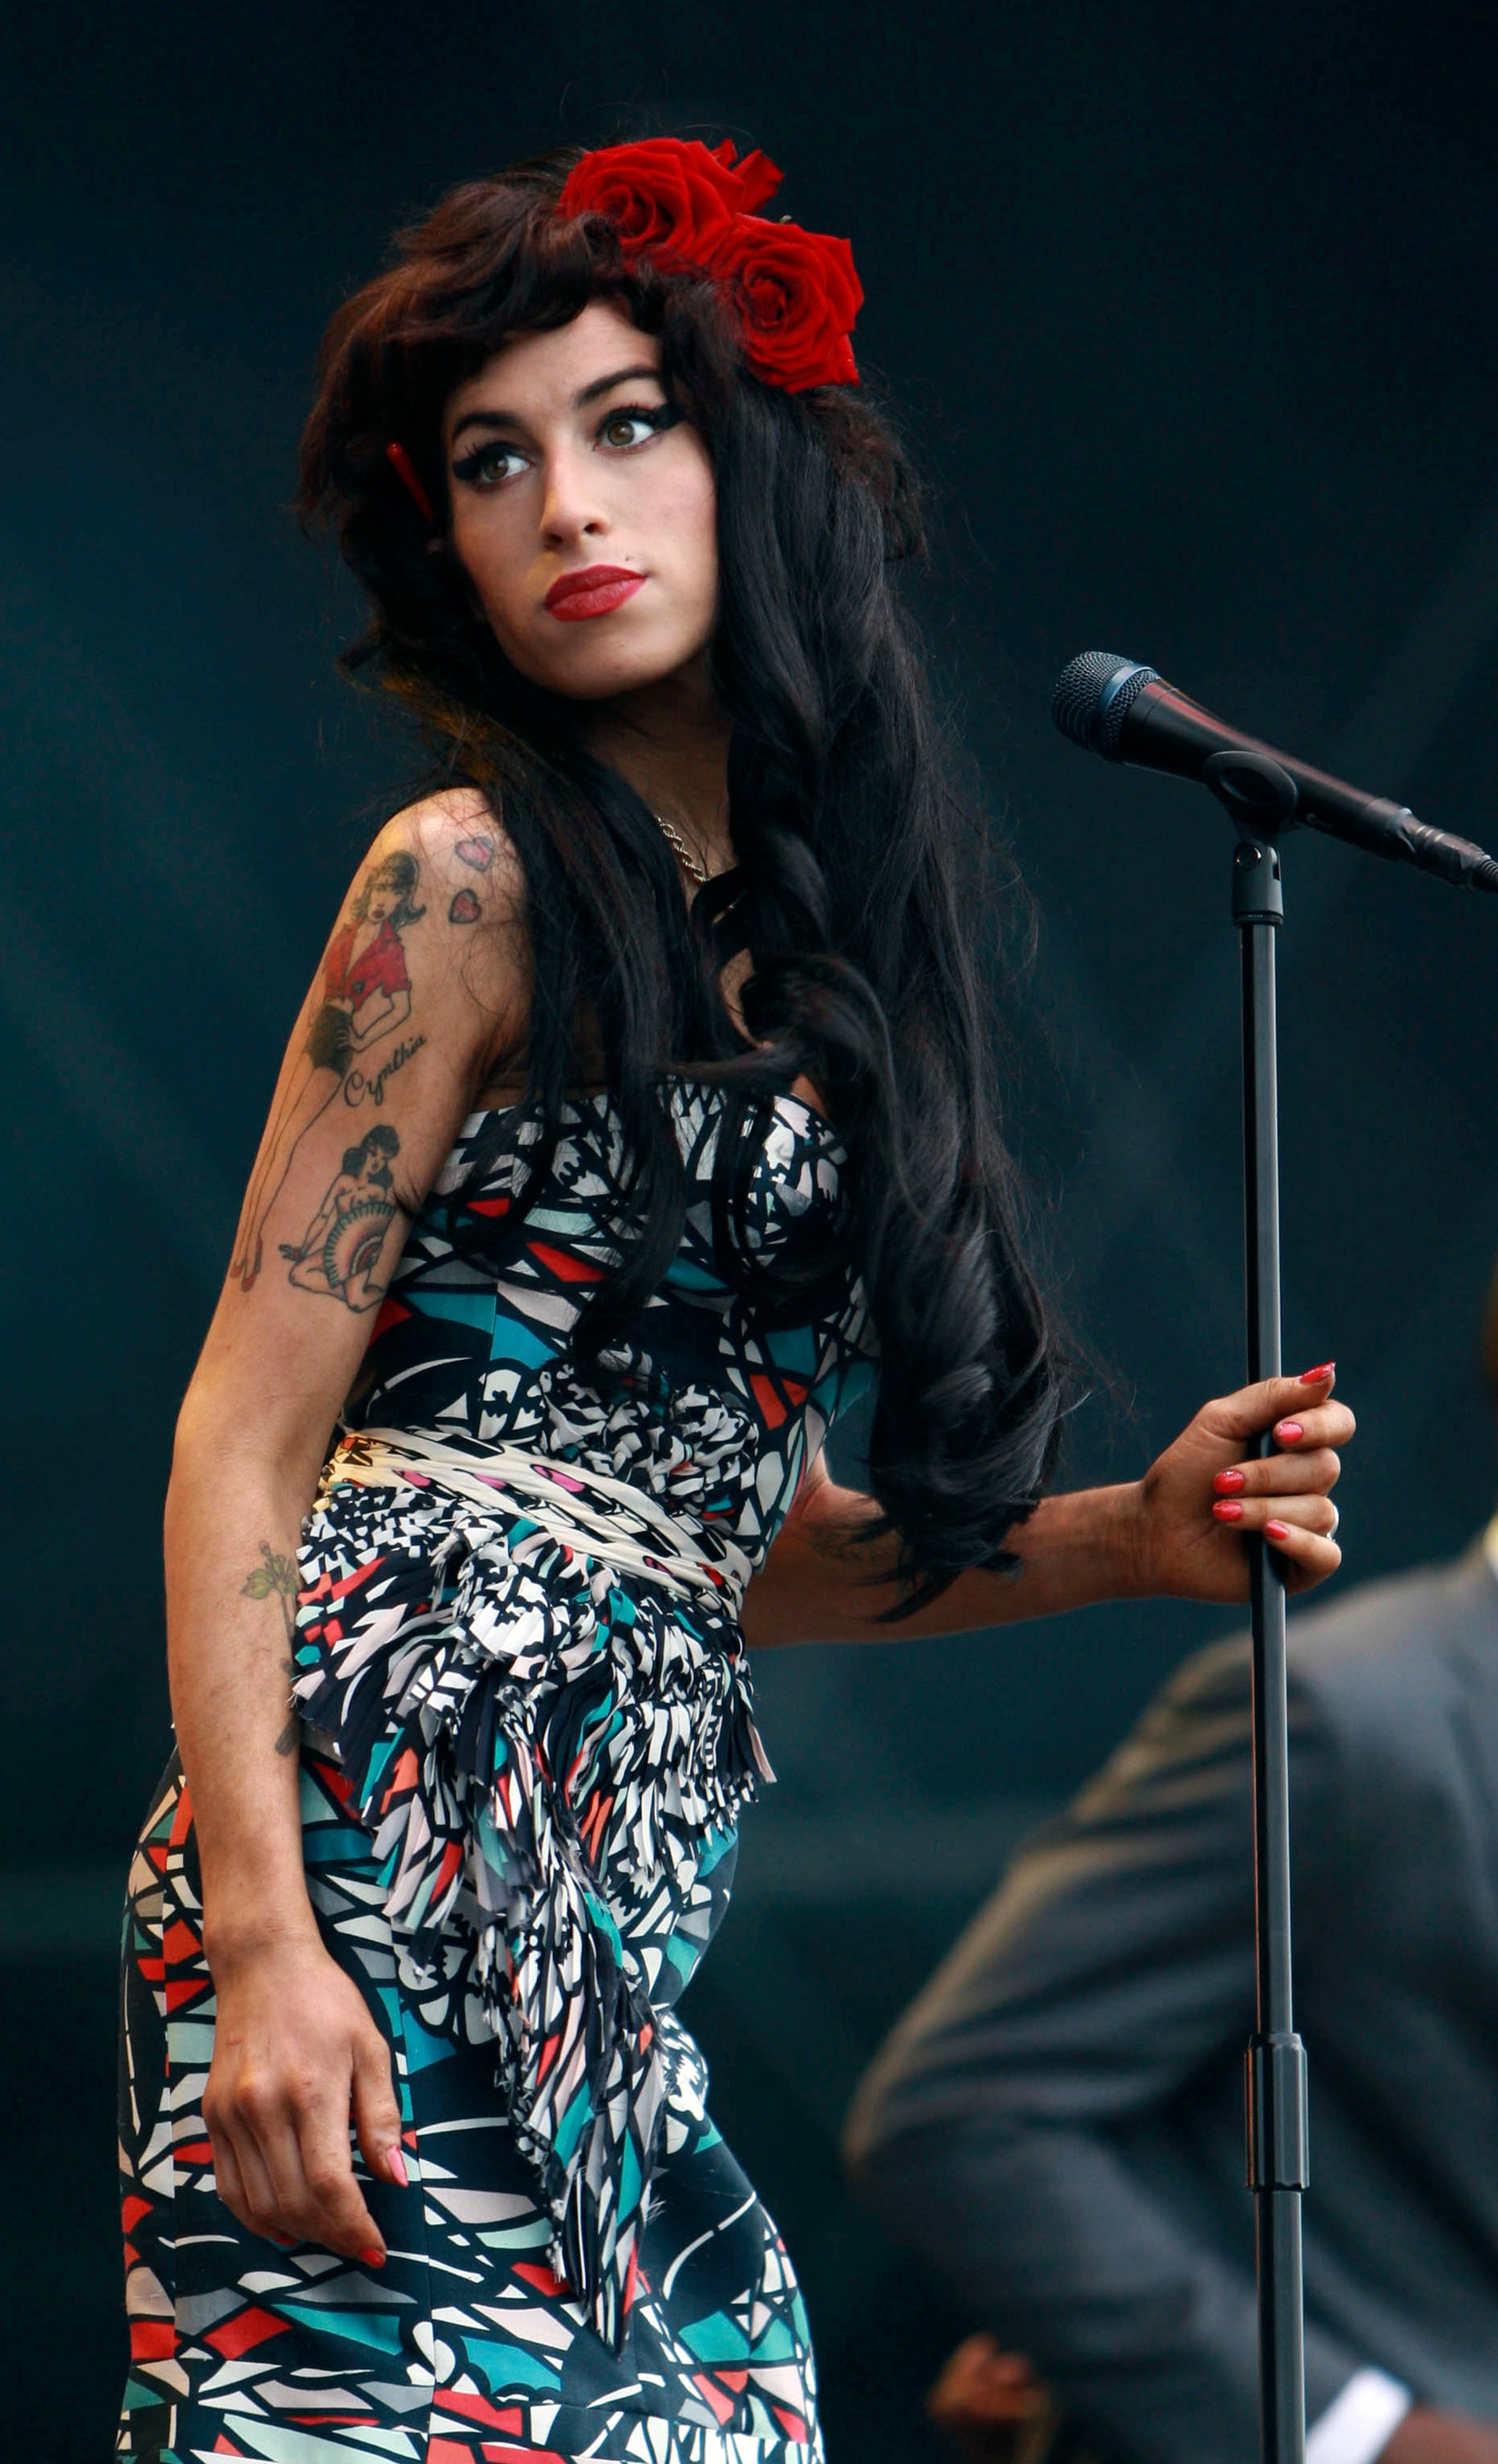 AMY WINEHOUSE PERFORMING ESSEX - Limited Edition of 50 – Lyons Gallery